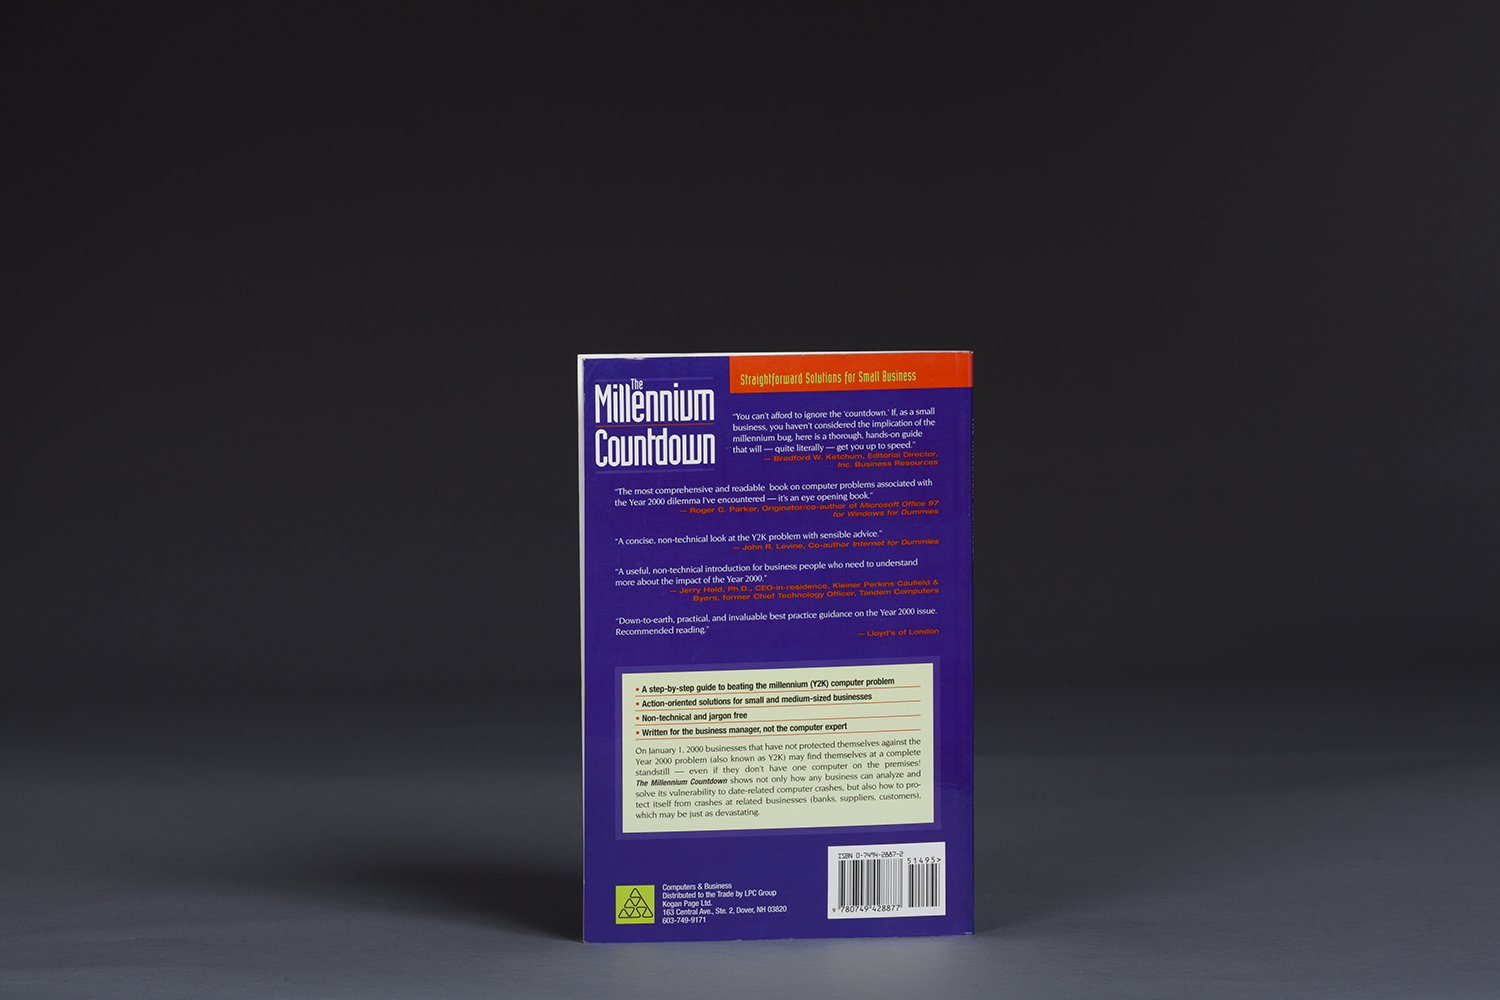 The Millennium Countdown - A Practical Guide - 0281 Back.jpg